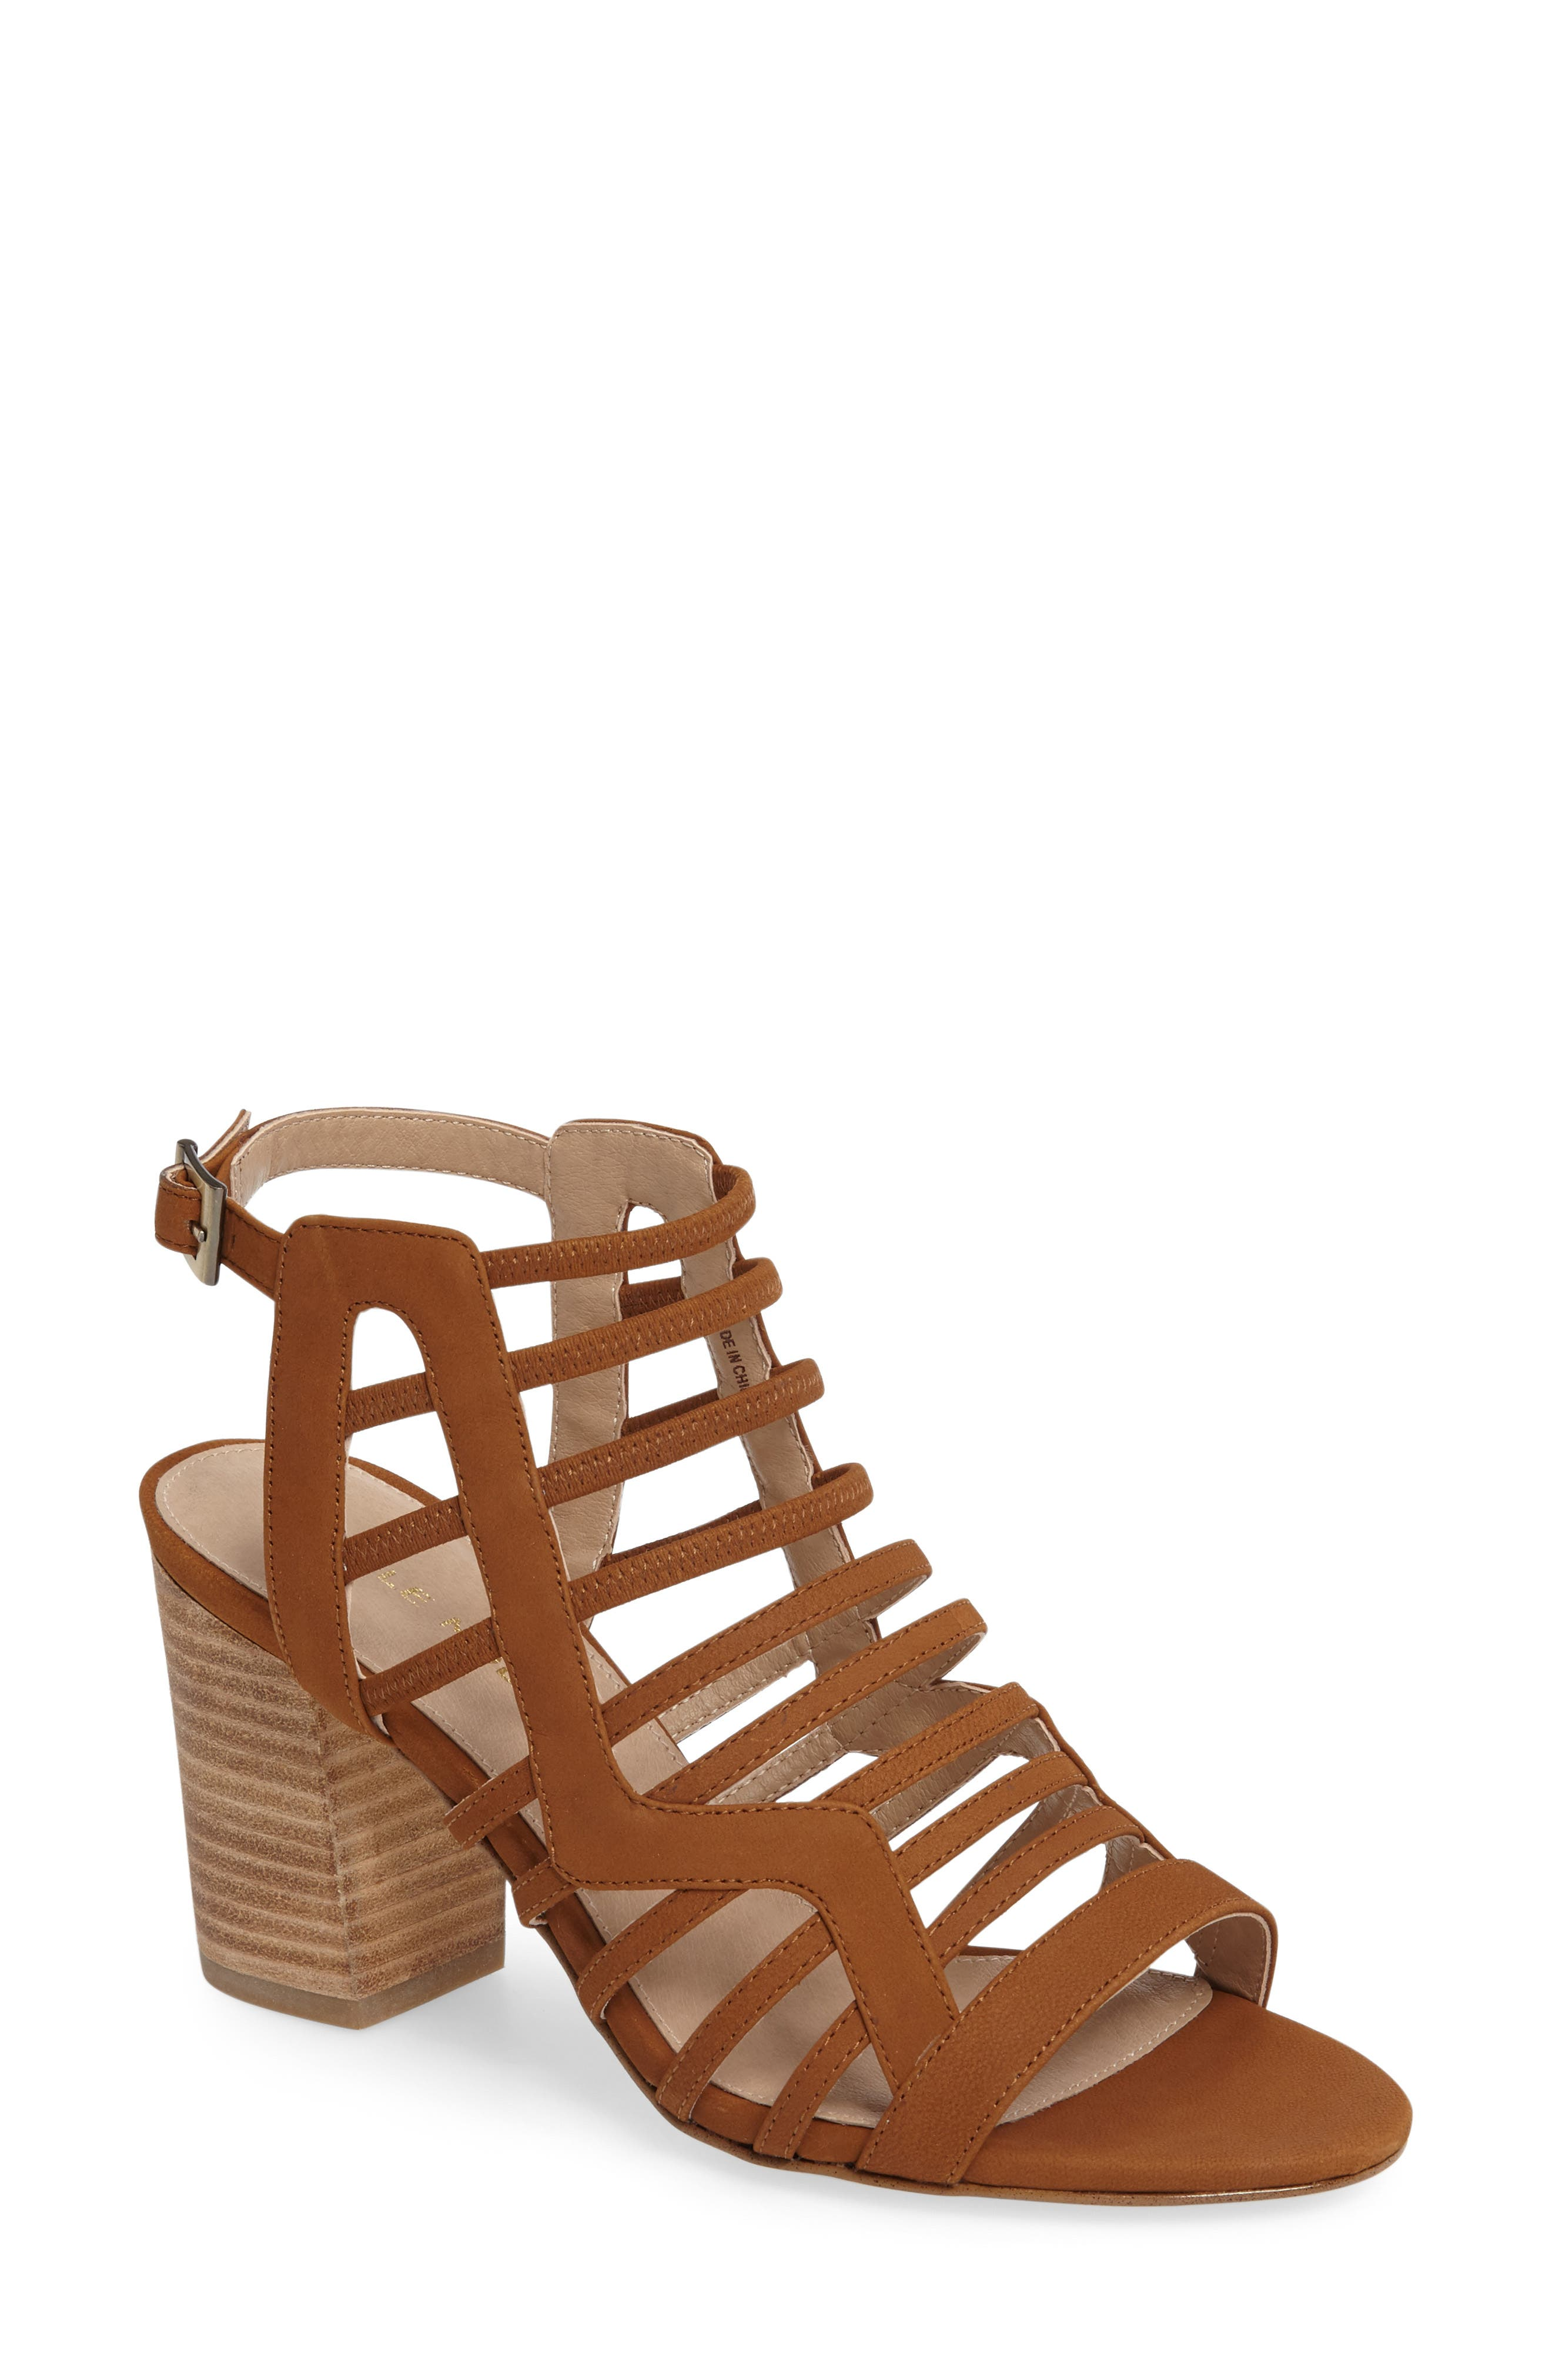 Bonitta Cage Sandal,                             Main thumbnail 1, color,                             Luggage Leather